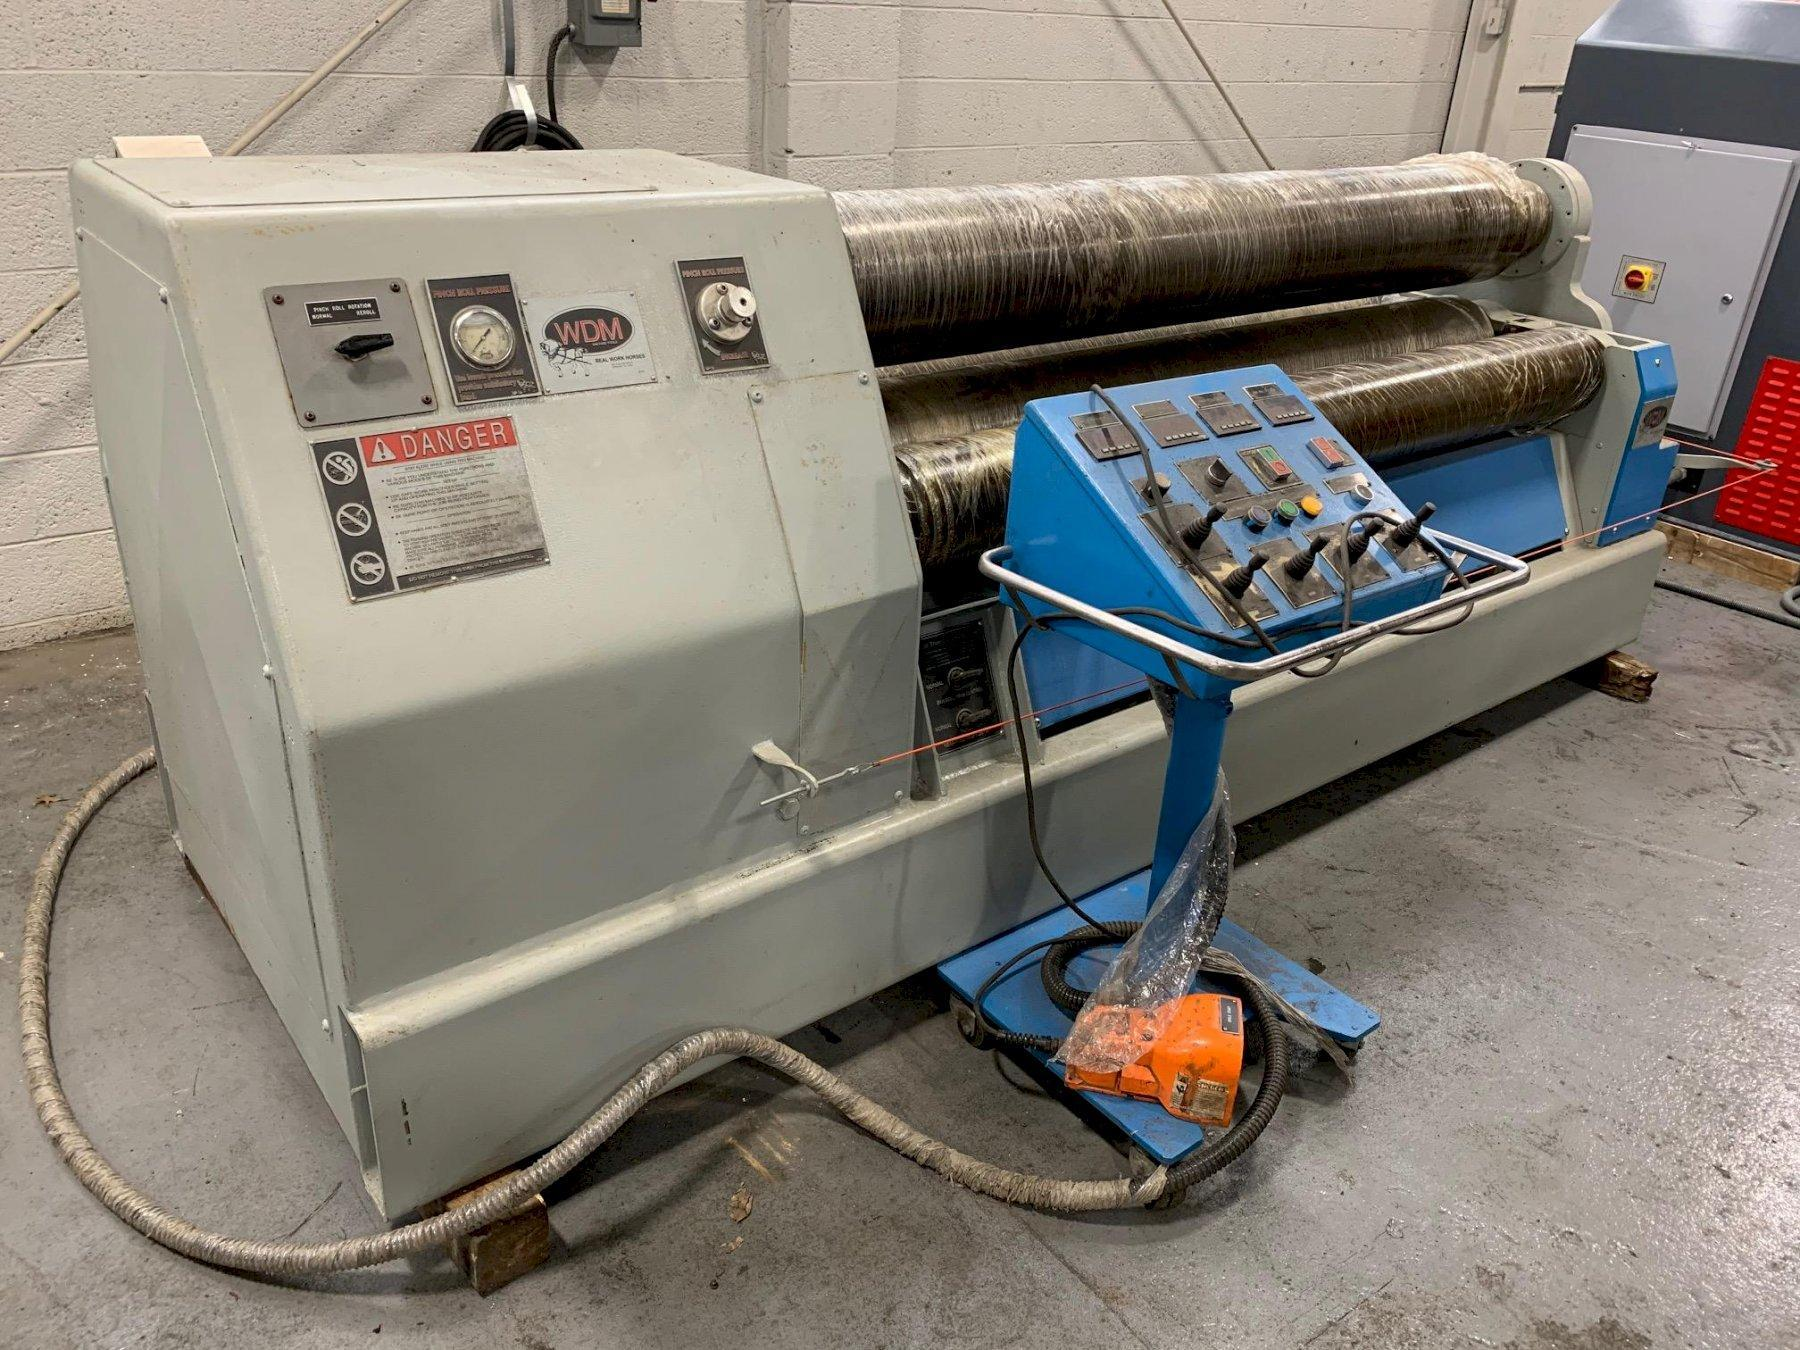 "USED WDM 4-ROLL HYDRAULIC PLATE BENDING ROLL MODEL 403-11-6.58 5/8"" x 6.58', STOCK NO. 10681, YEAR 2014"